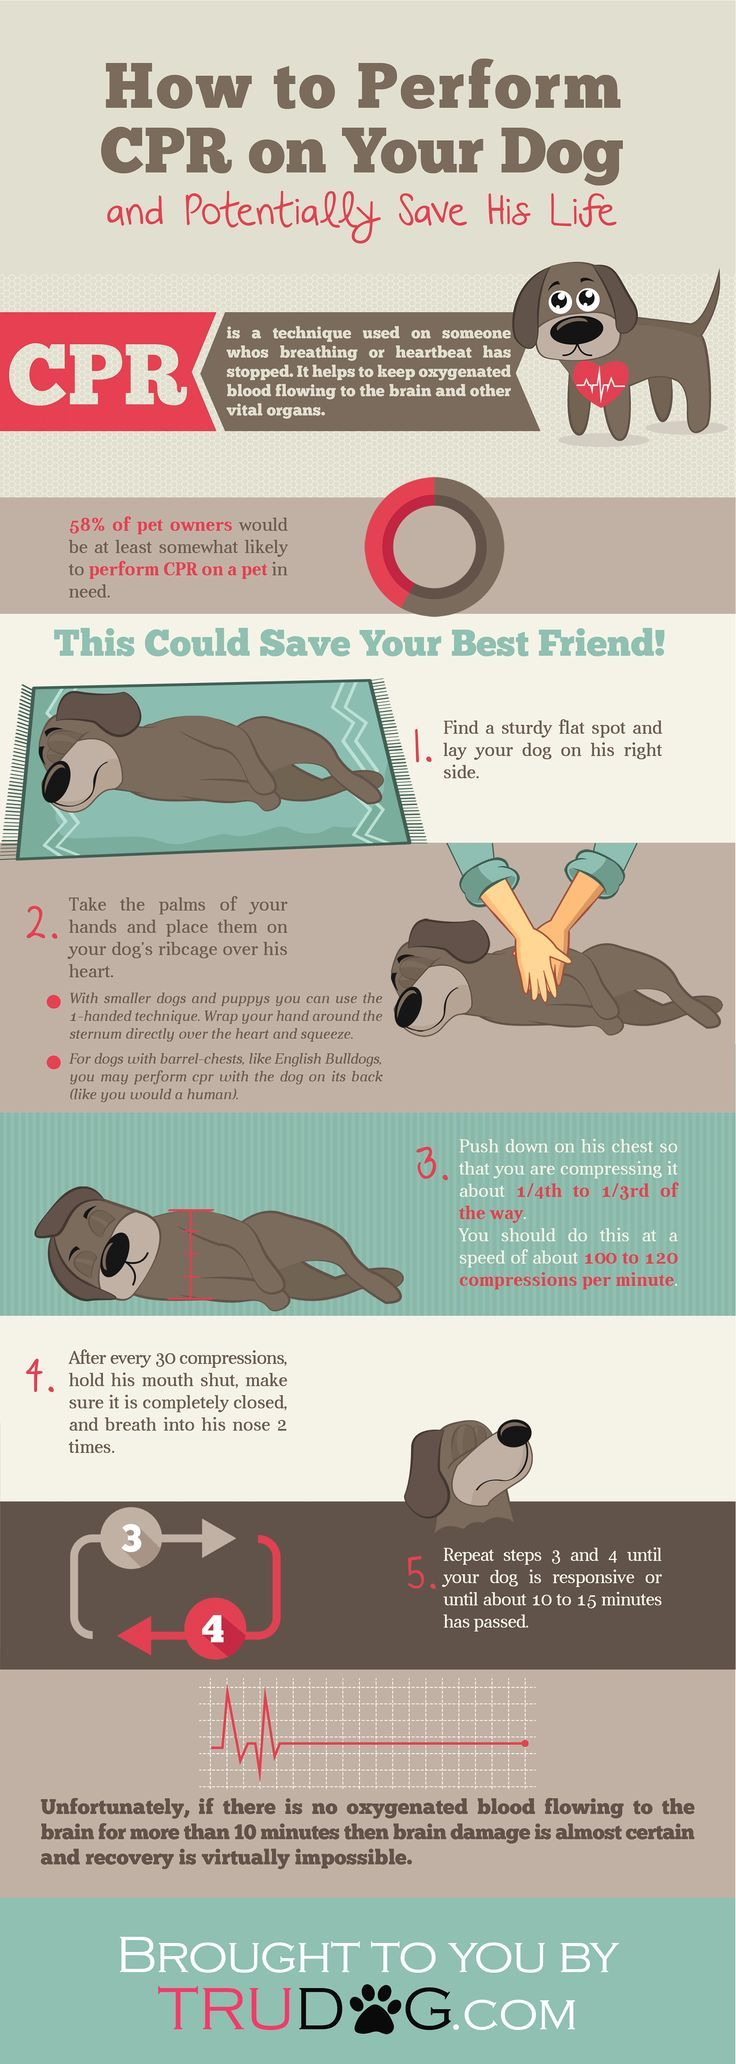 It's important to know CPR for dogs- it could save your dog's life one day!!